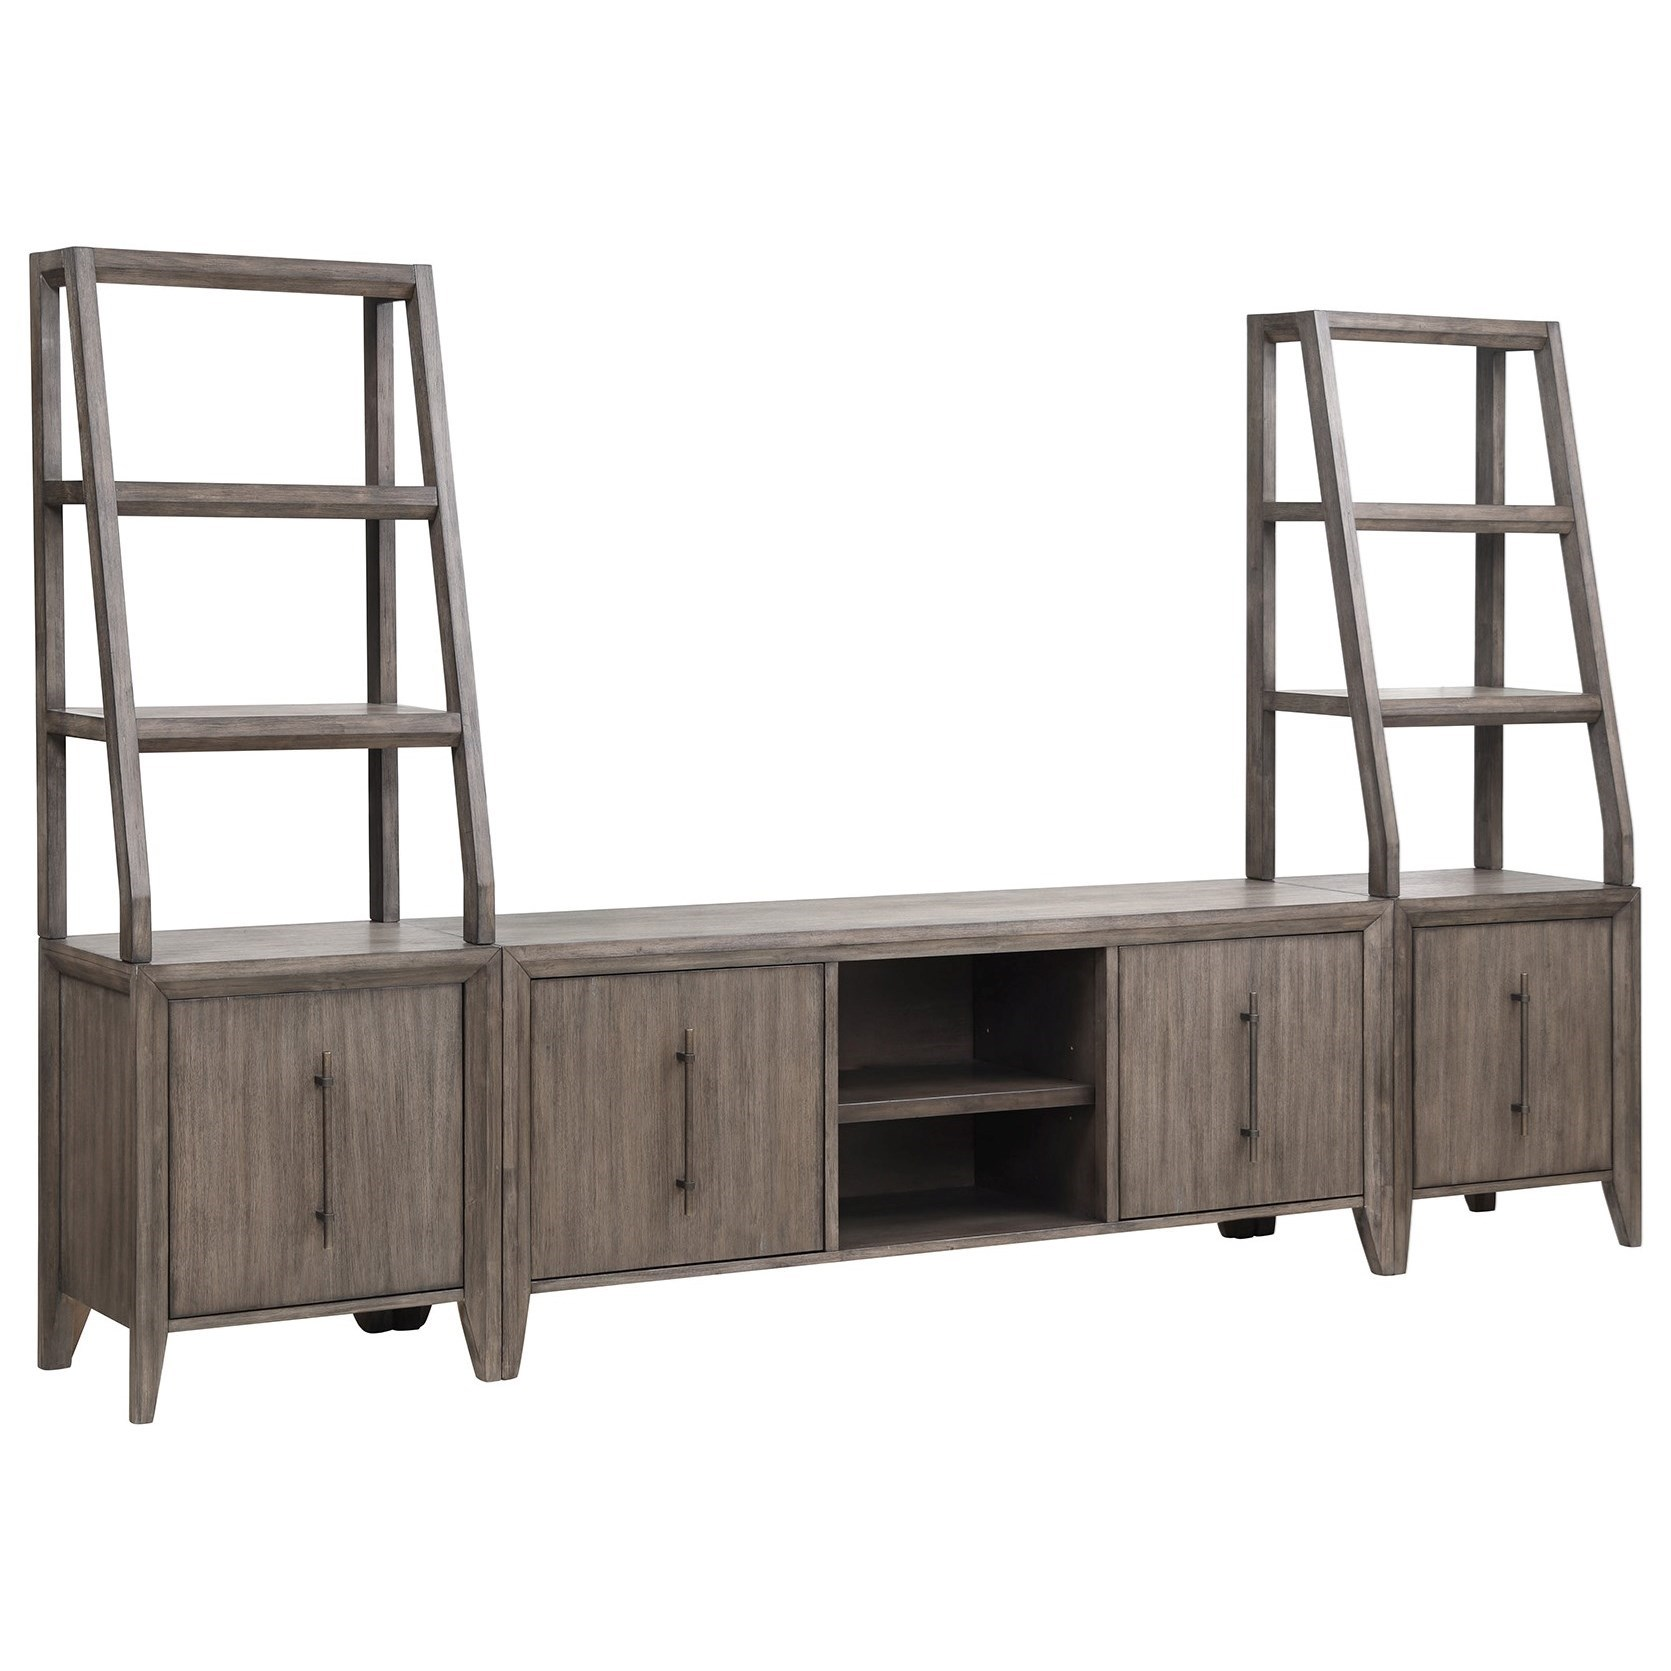 Avana Entertainment Wall Unit by Legends Furniture at EFO Furniture Outlet